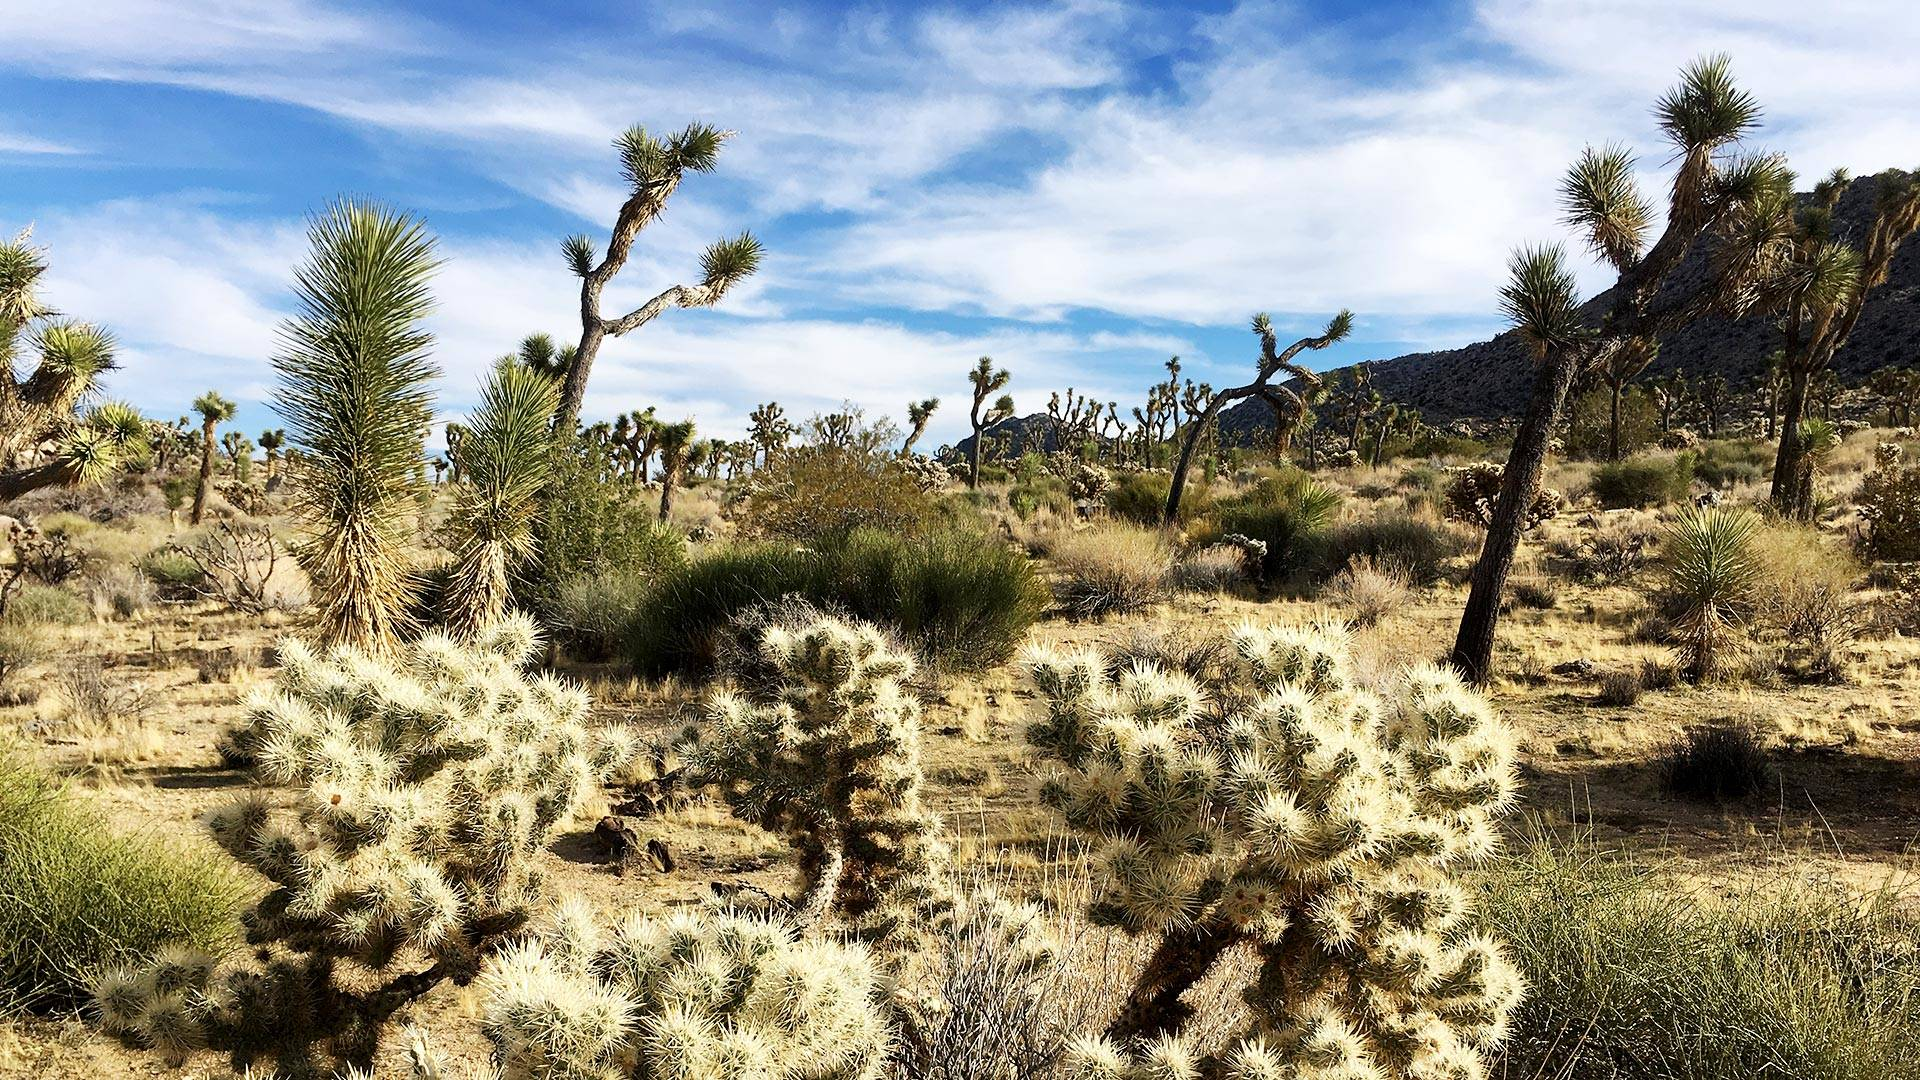 Joshua Tree National Park is one of the areas that will benefit from newly passed legislation expanding protected wilderness across the country.  Mojave Desert Land Trust Headquarters